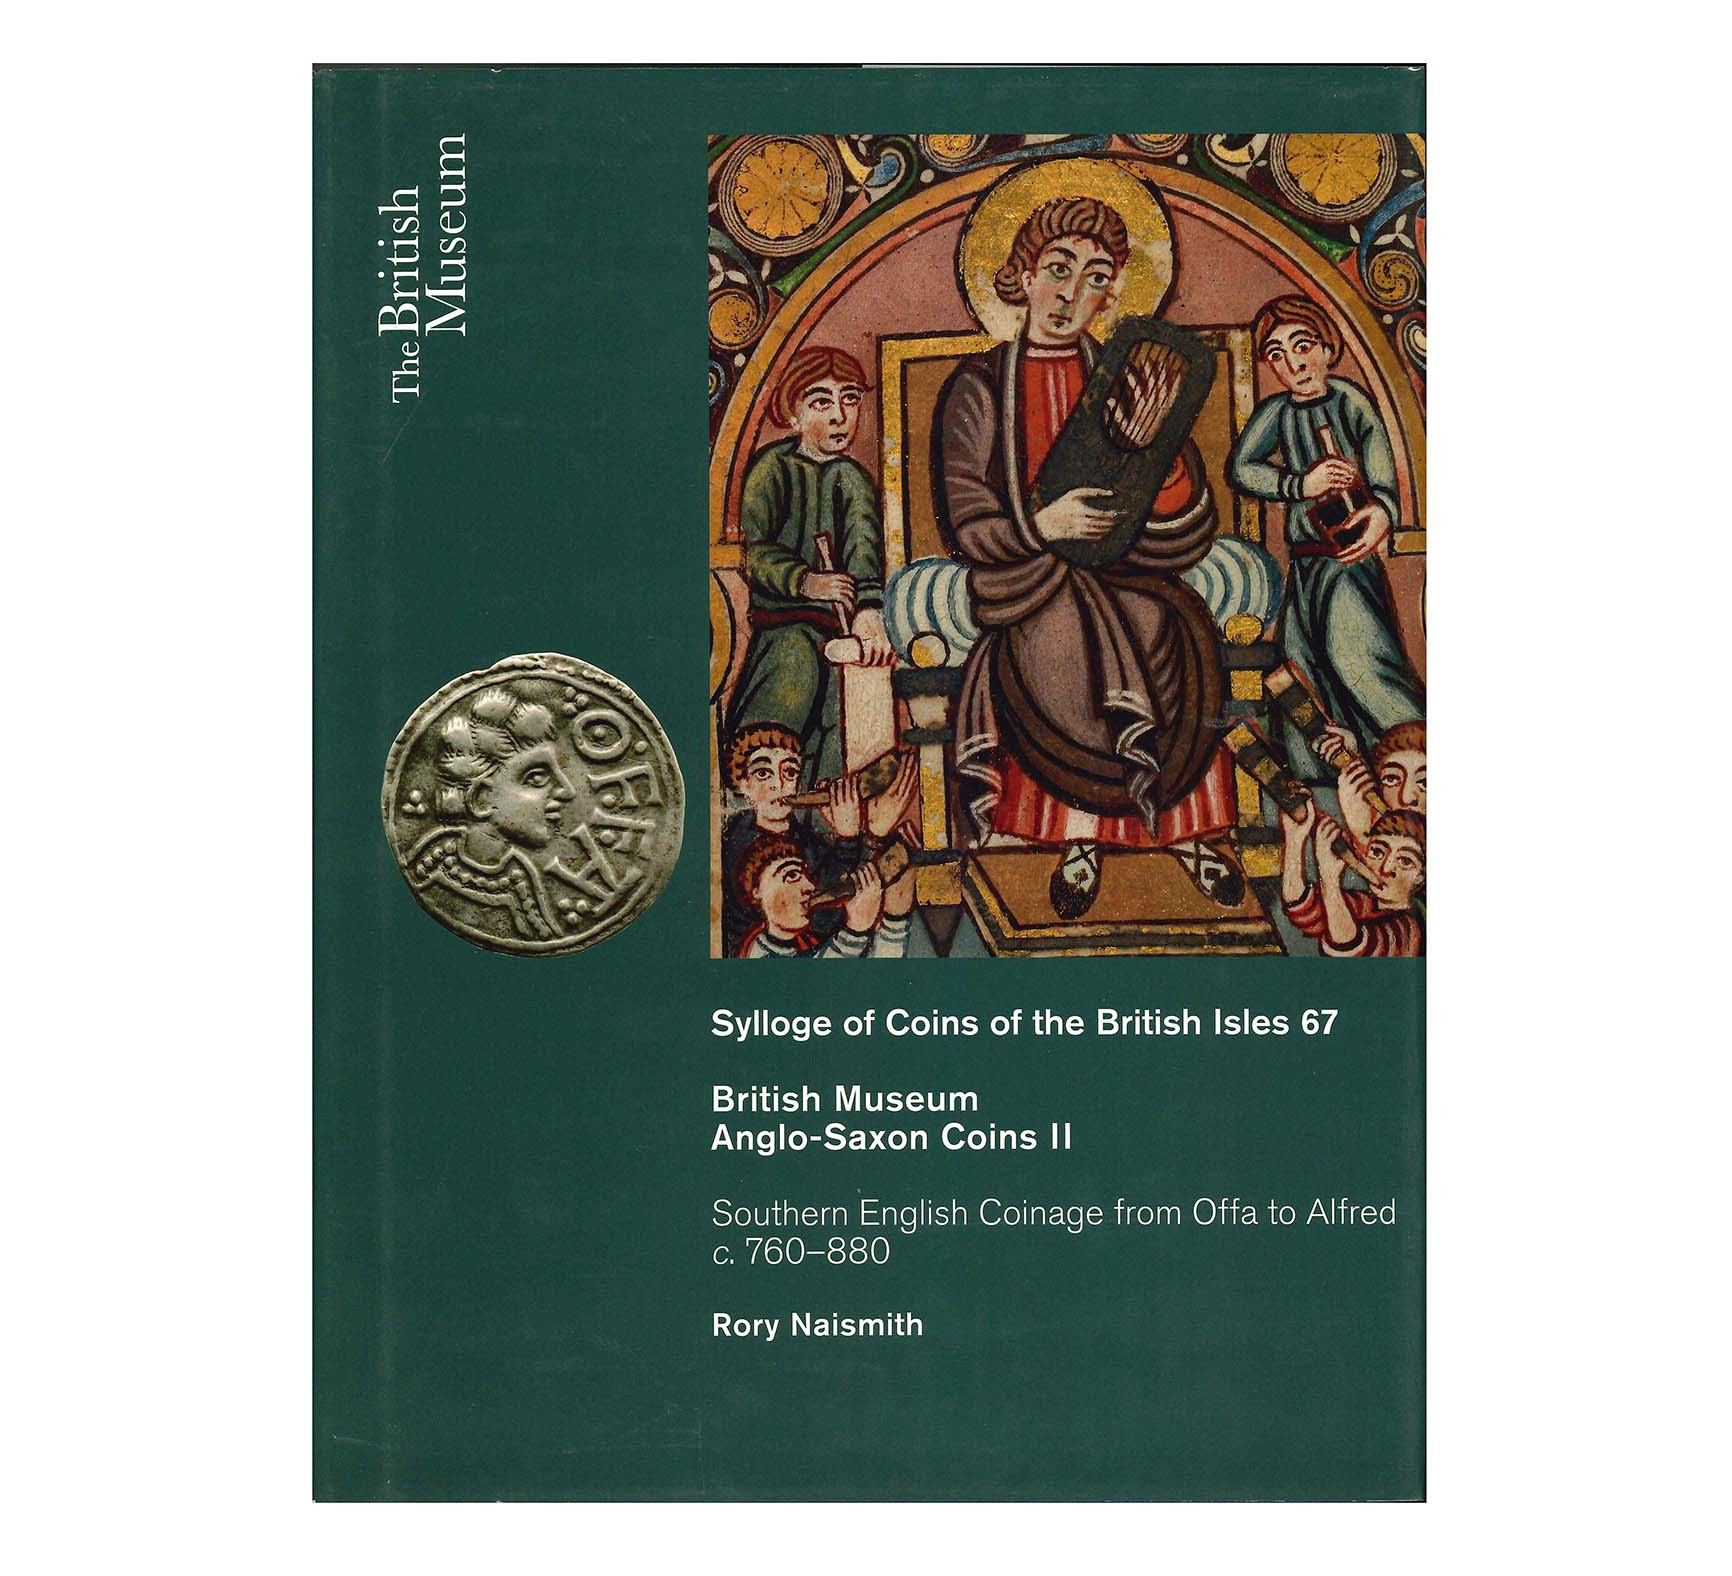 Sylloge of Coins of the British Isles 67. Anglo-Saxon Coins II.